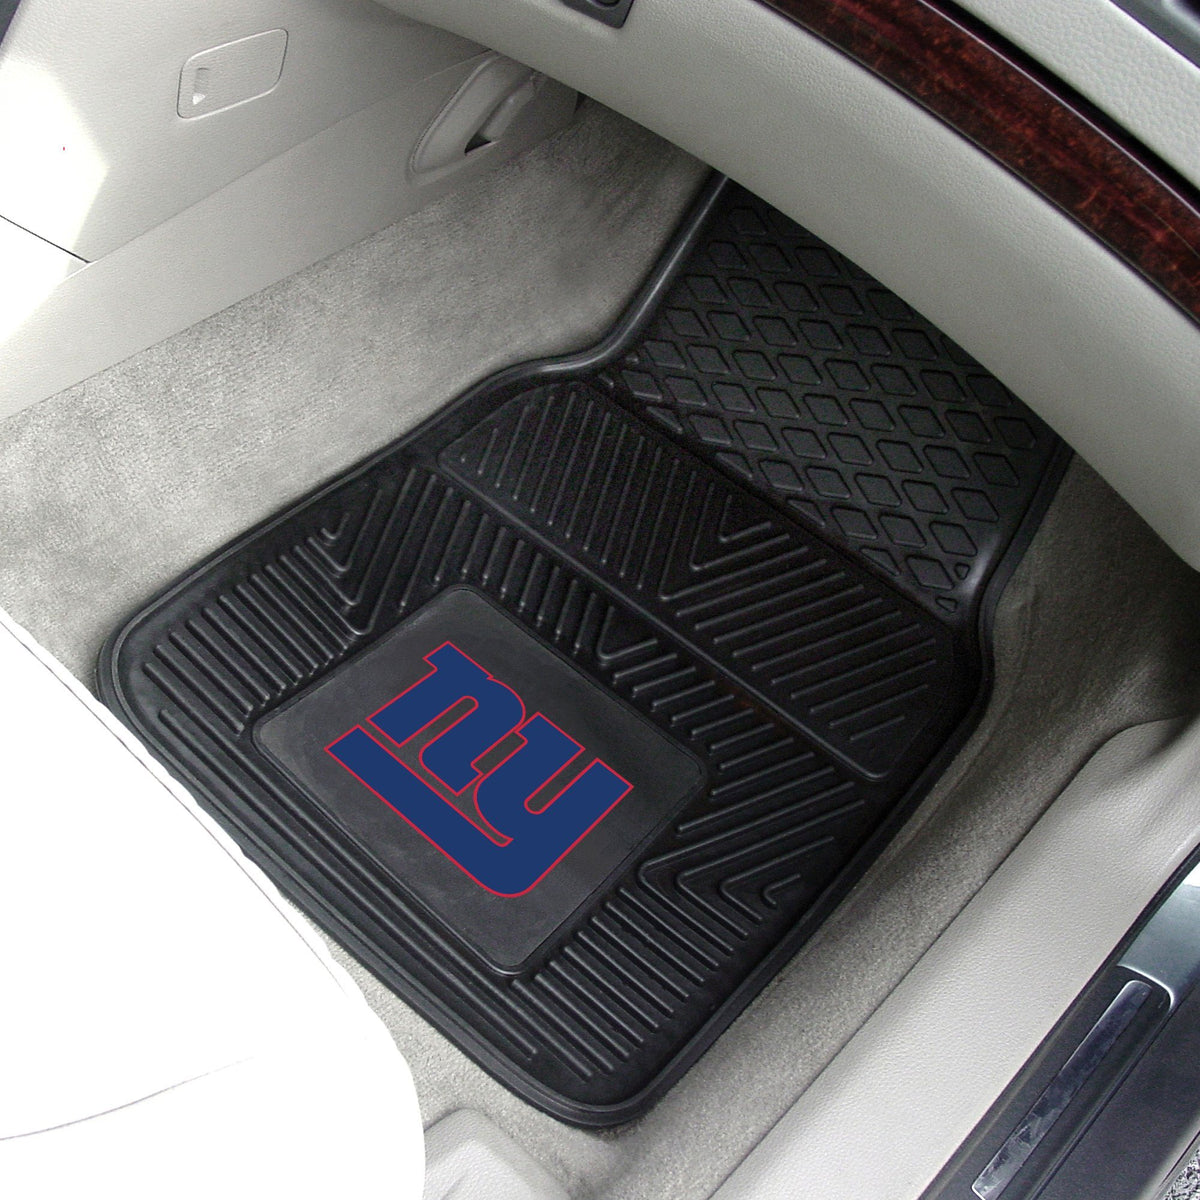 NFL - 2-pc Vinyl Car Mat Set NFL Mats, Front Car Mats, 2-pc Vinyl Car Mat Set, NFL, Auto Fan Mats New York Giants